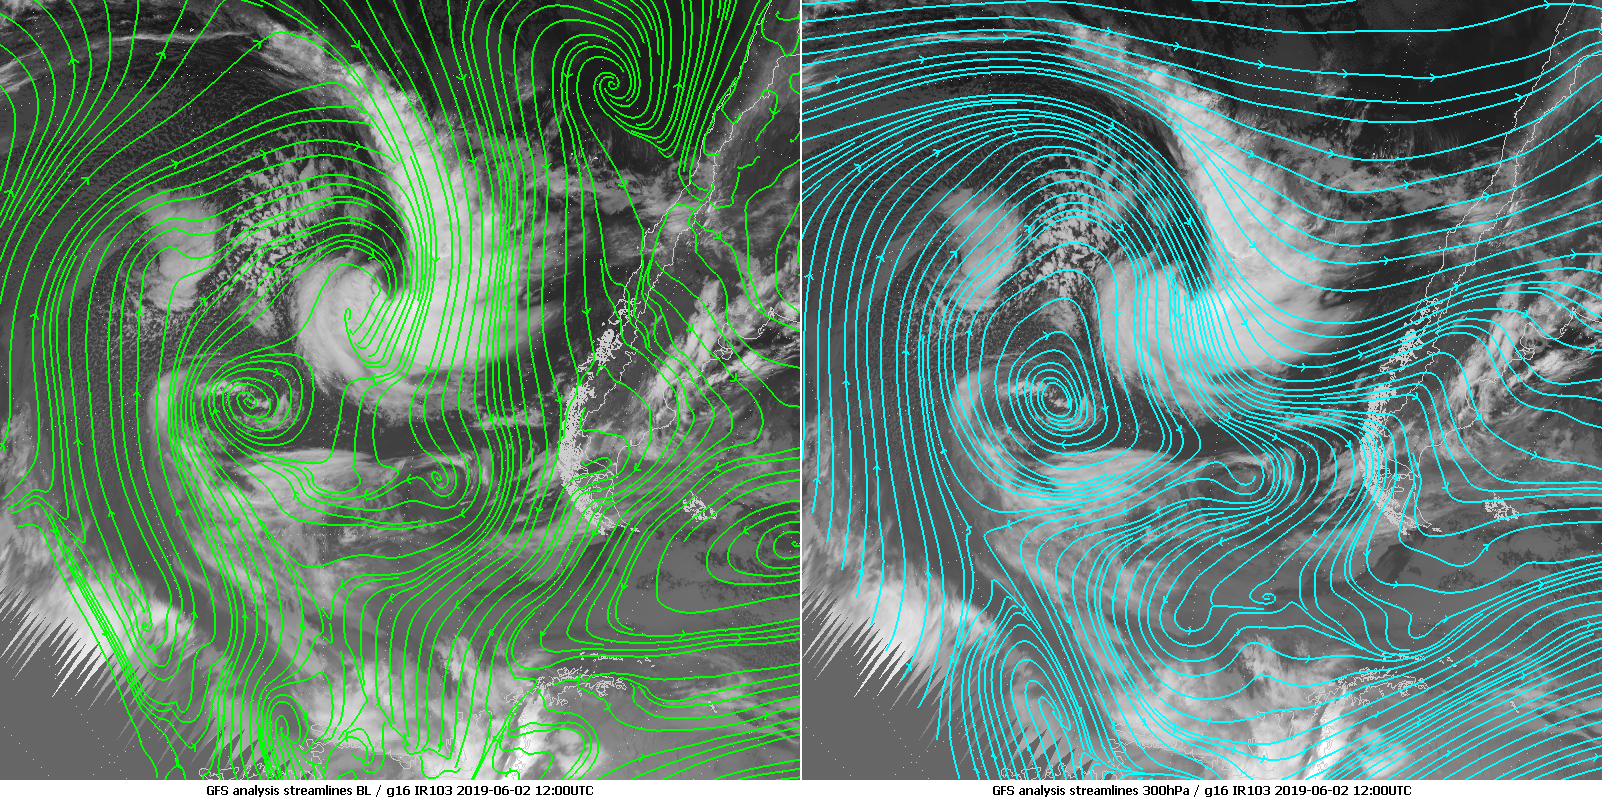 Streamlines in the planety boundary layer and at 300 hPa from the GFS analysis of 2 June 2019 12:00 UTC, laid over IR10.3 band from GOES-16